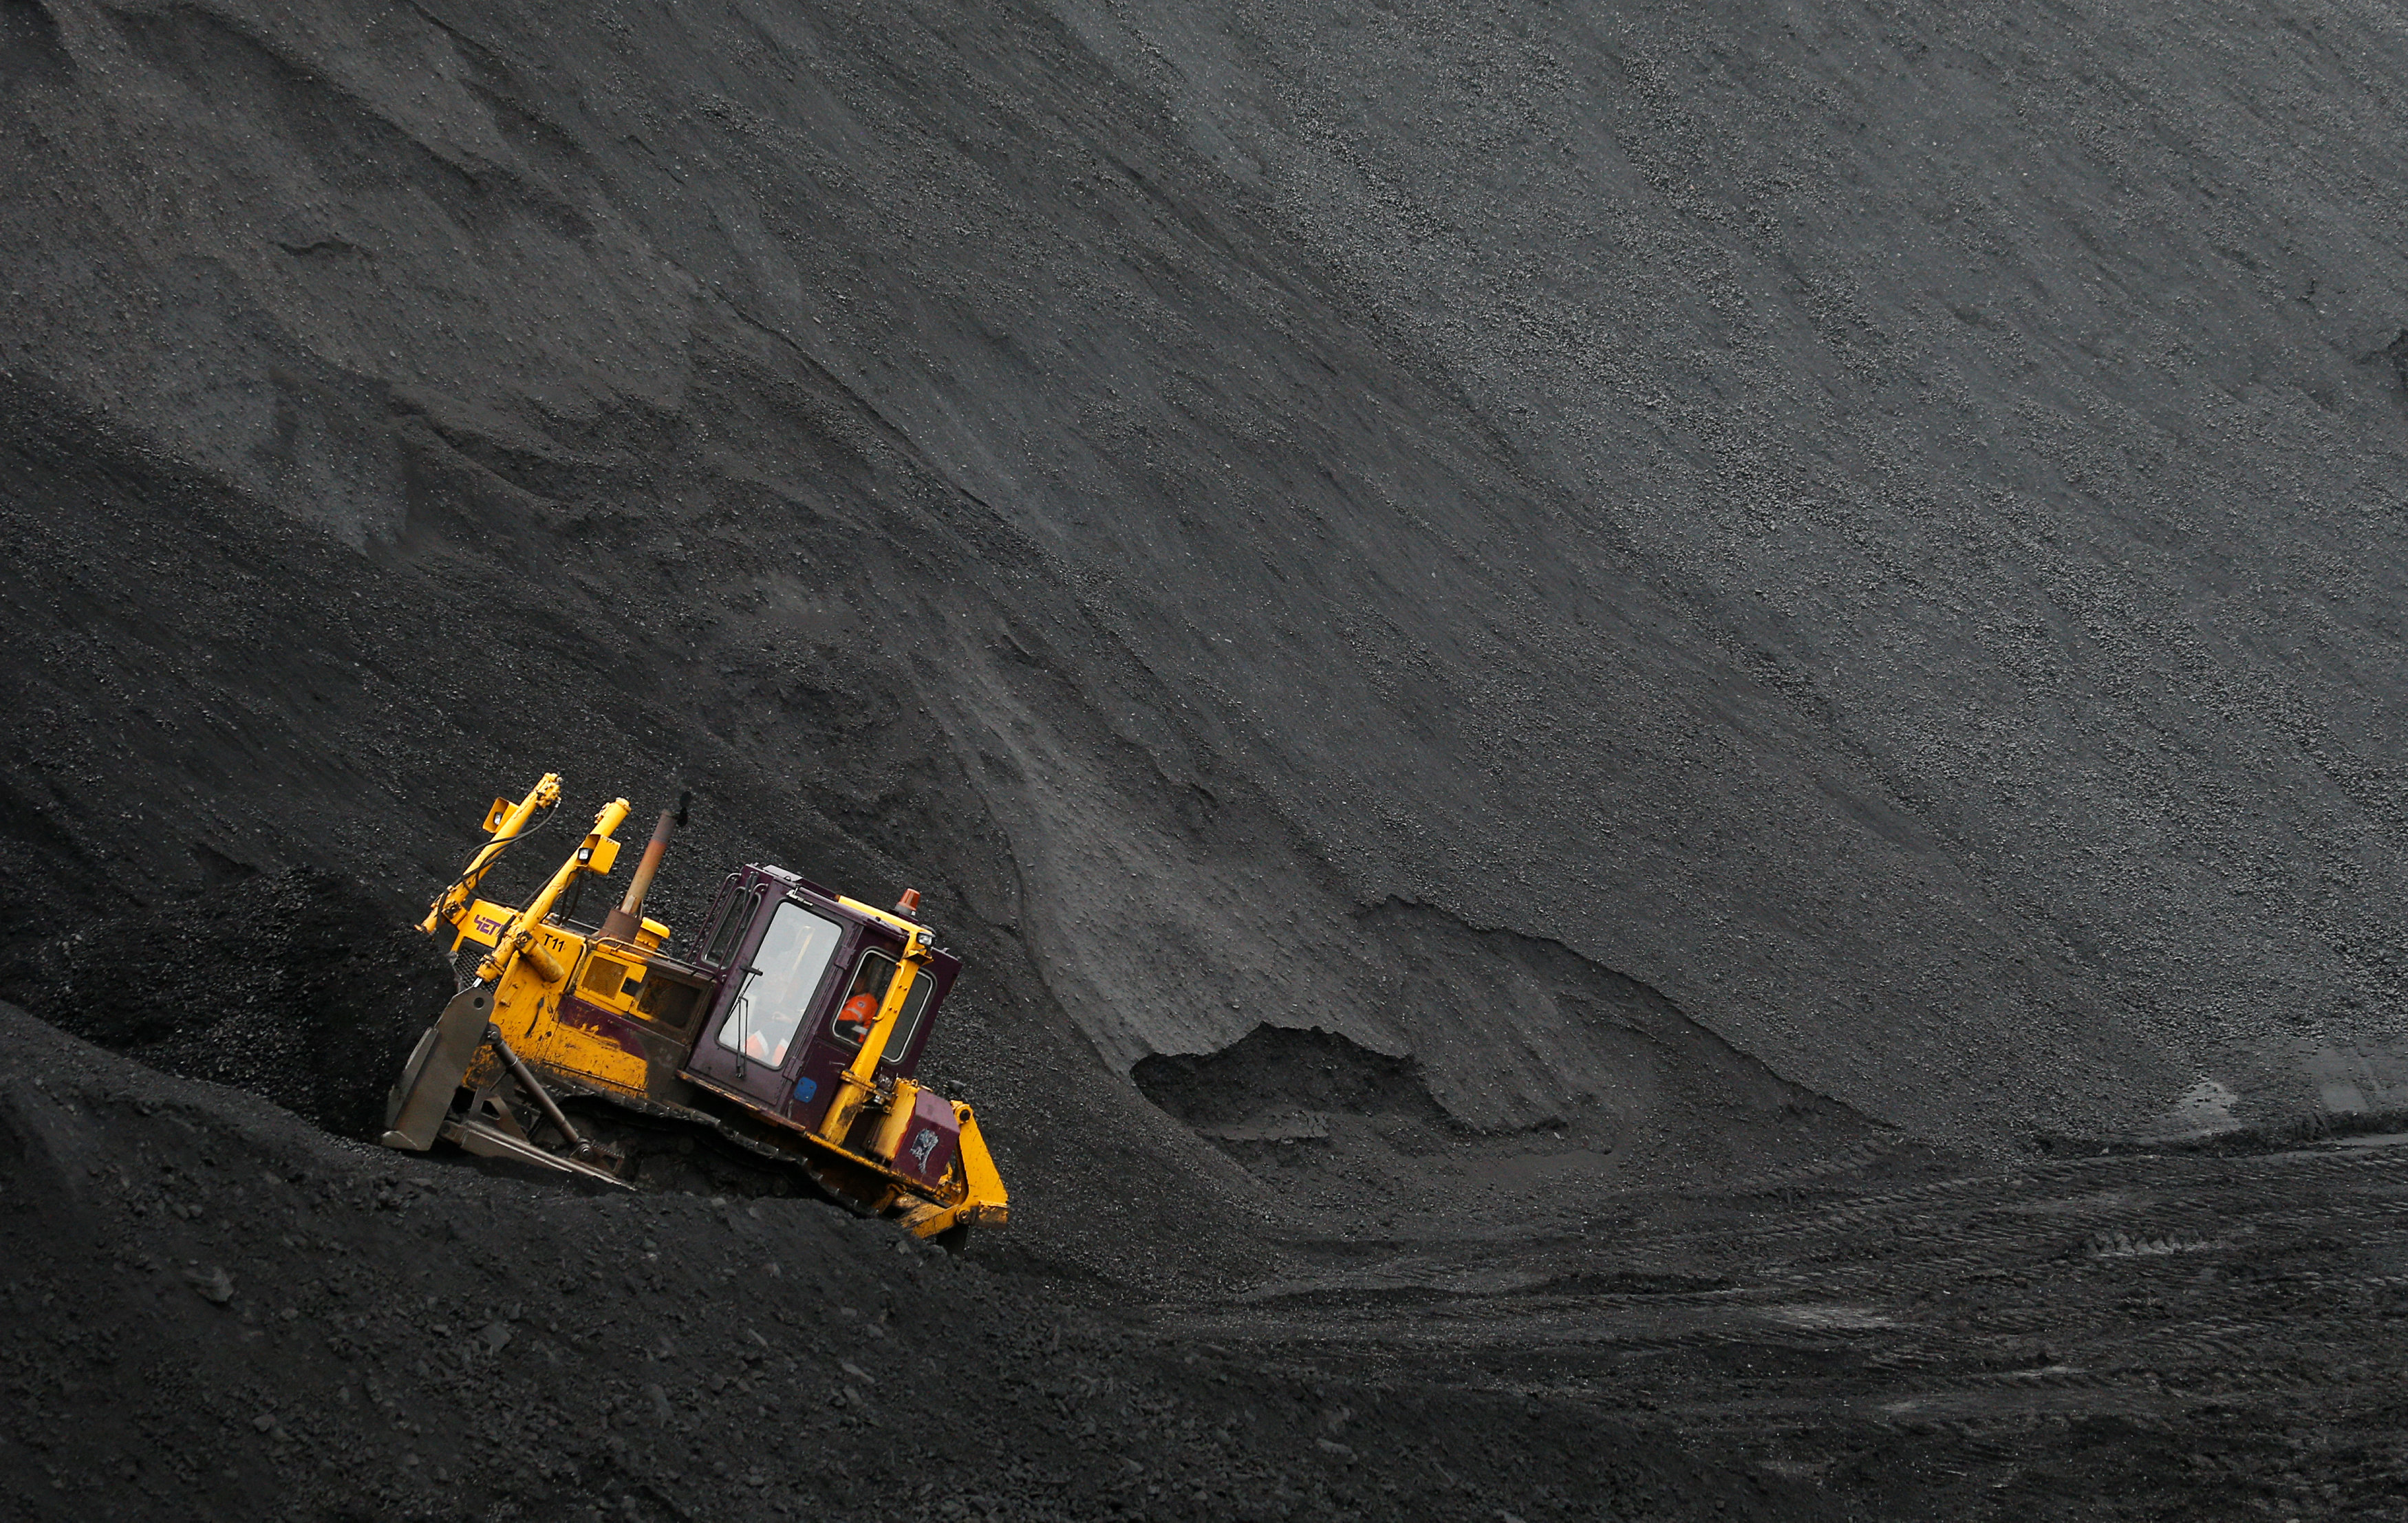 A labourer operates a bulldozer on a stockpile of coal at Vorgashorskaya mine outside the far northern city of Vorkuta